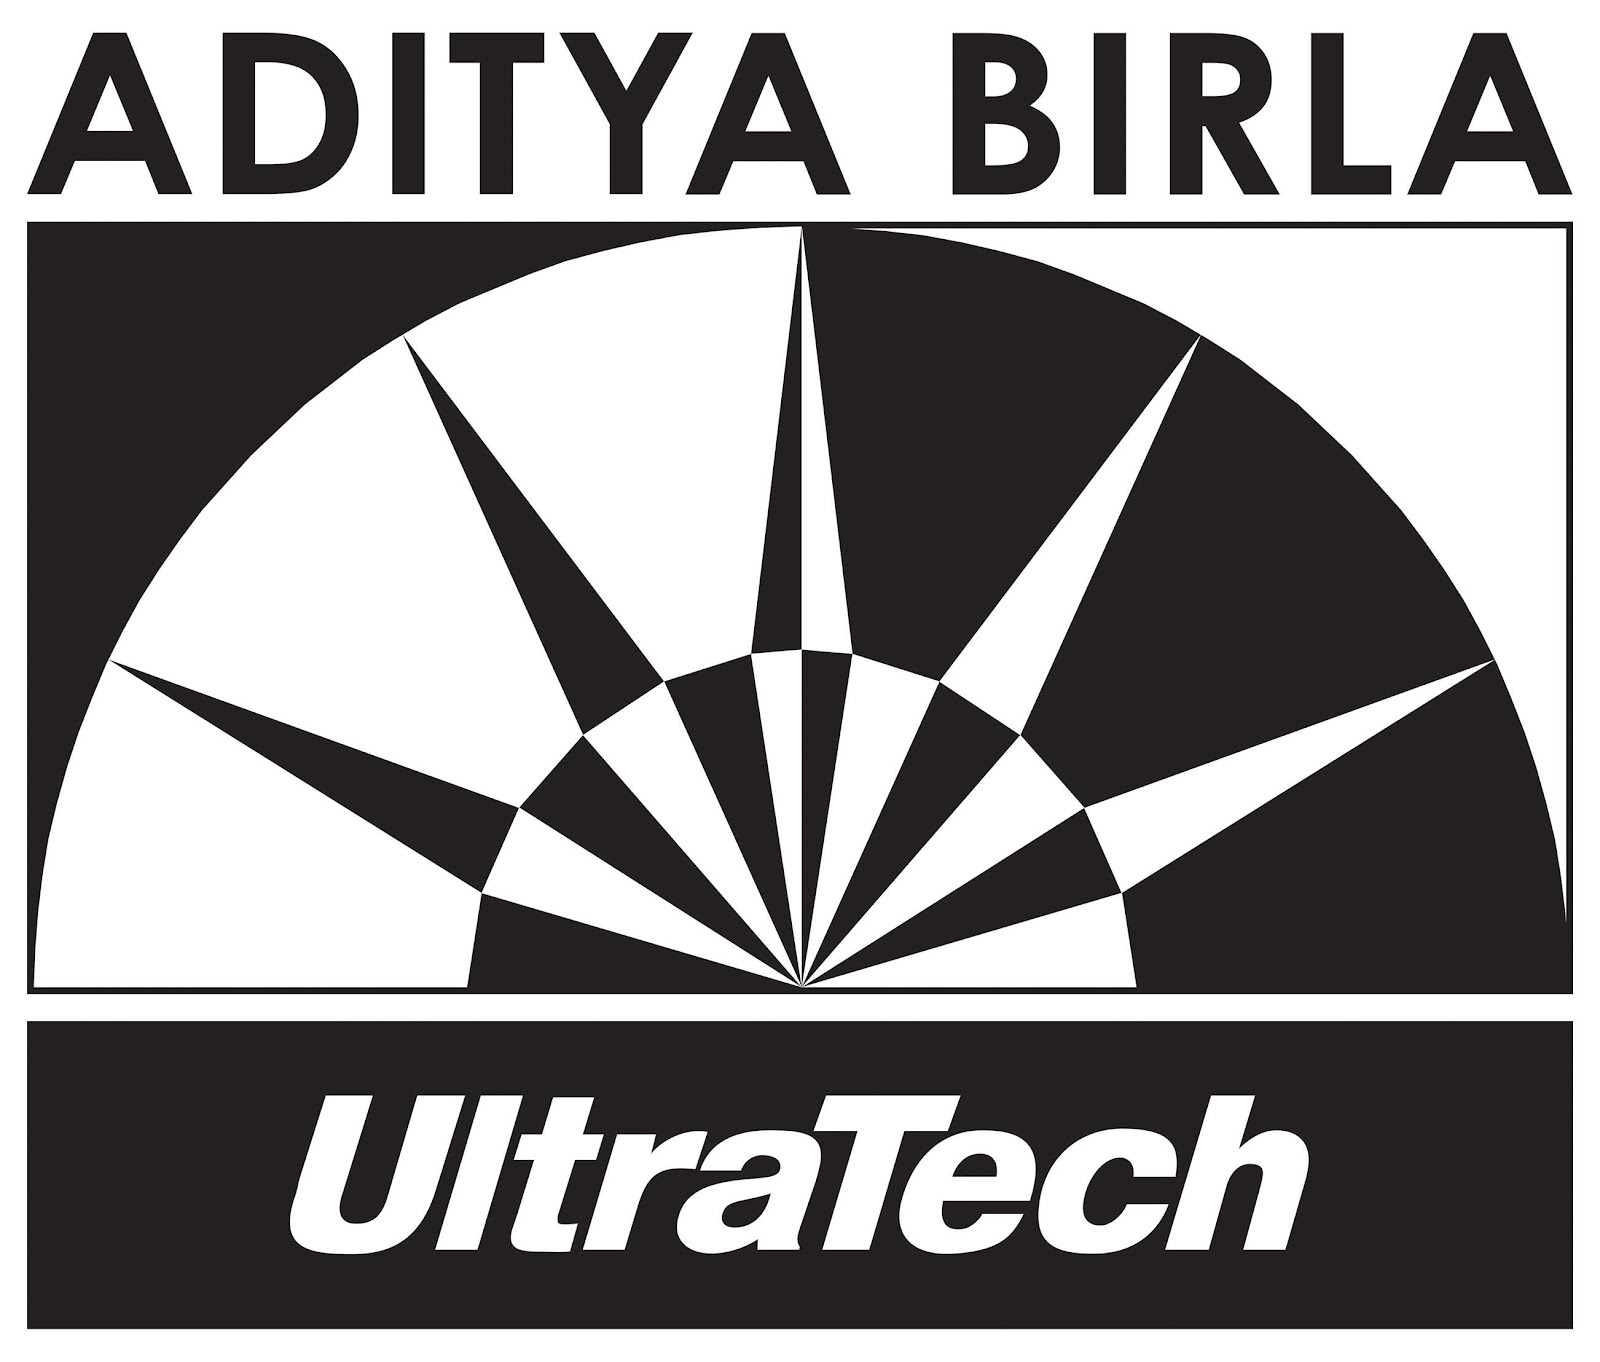 Ultratech Cement Variety : Aditya birla ultratech cement logo free indian logos